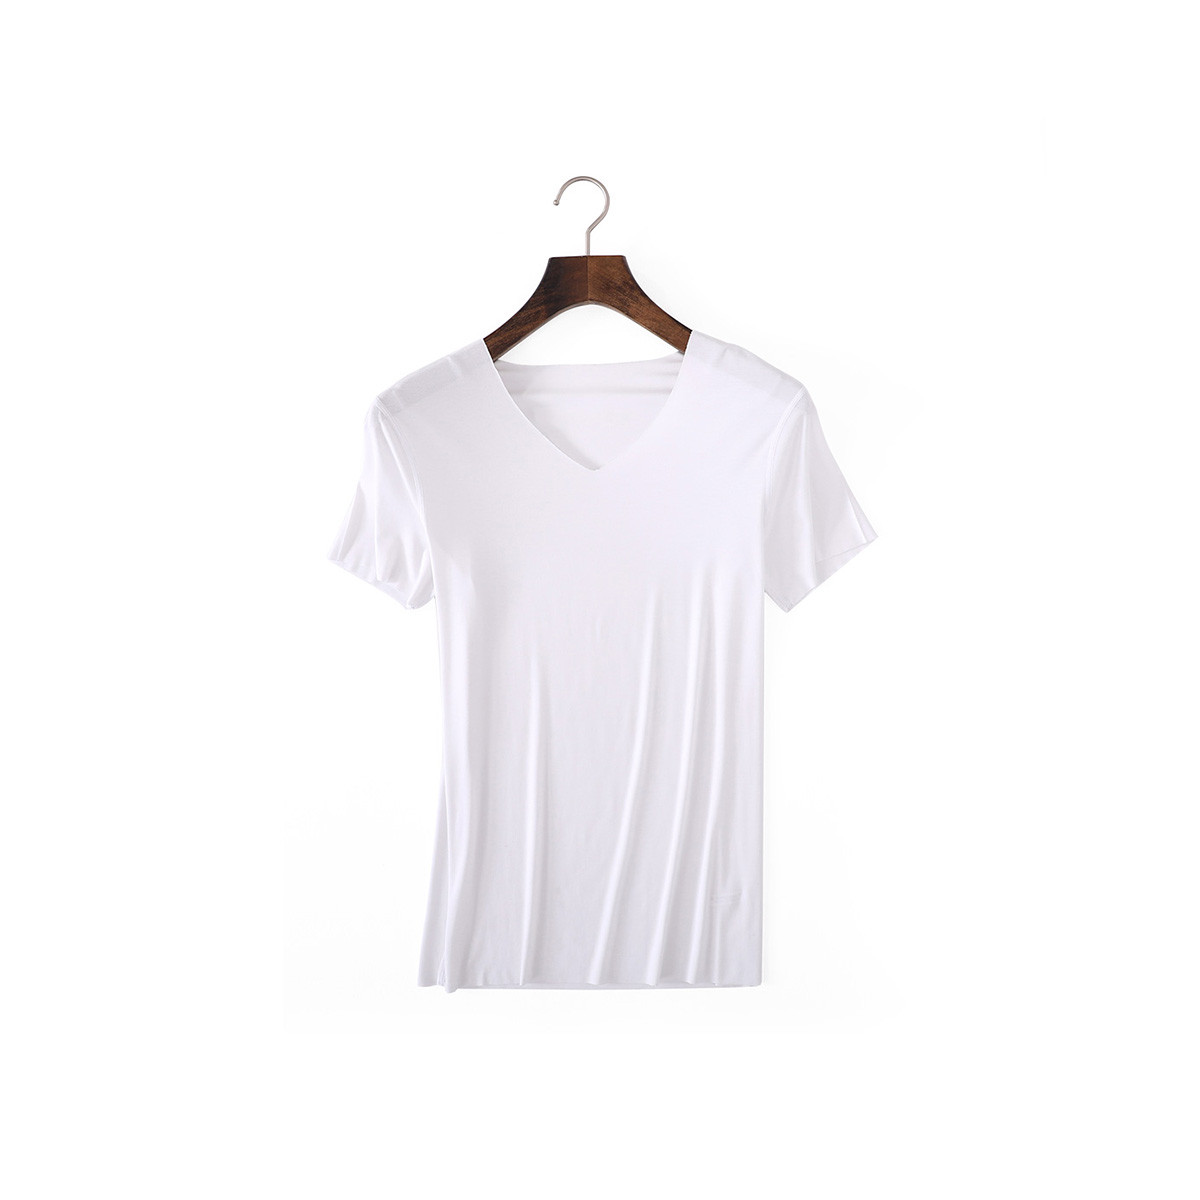 China Tshirts Cheap Wholesale Tshirts Custom Printed Tshirts